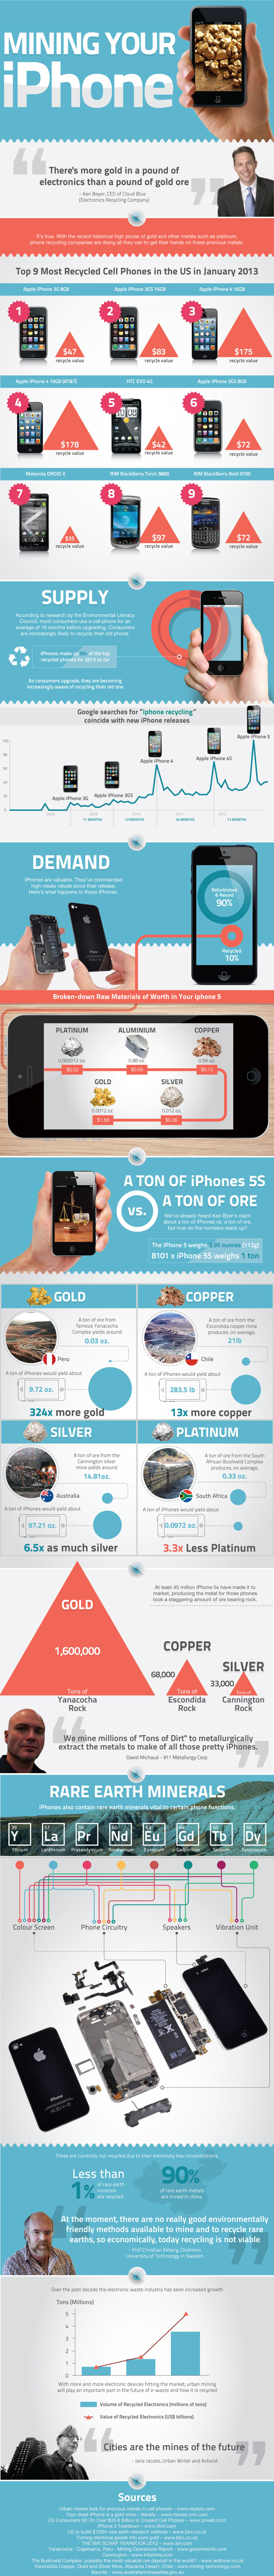 2.Mining-your-iphone2